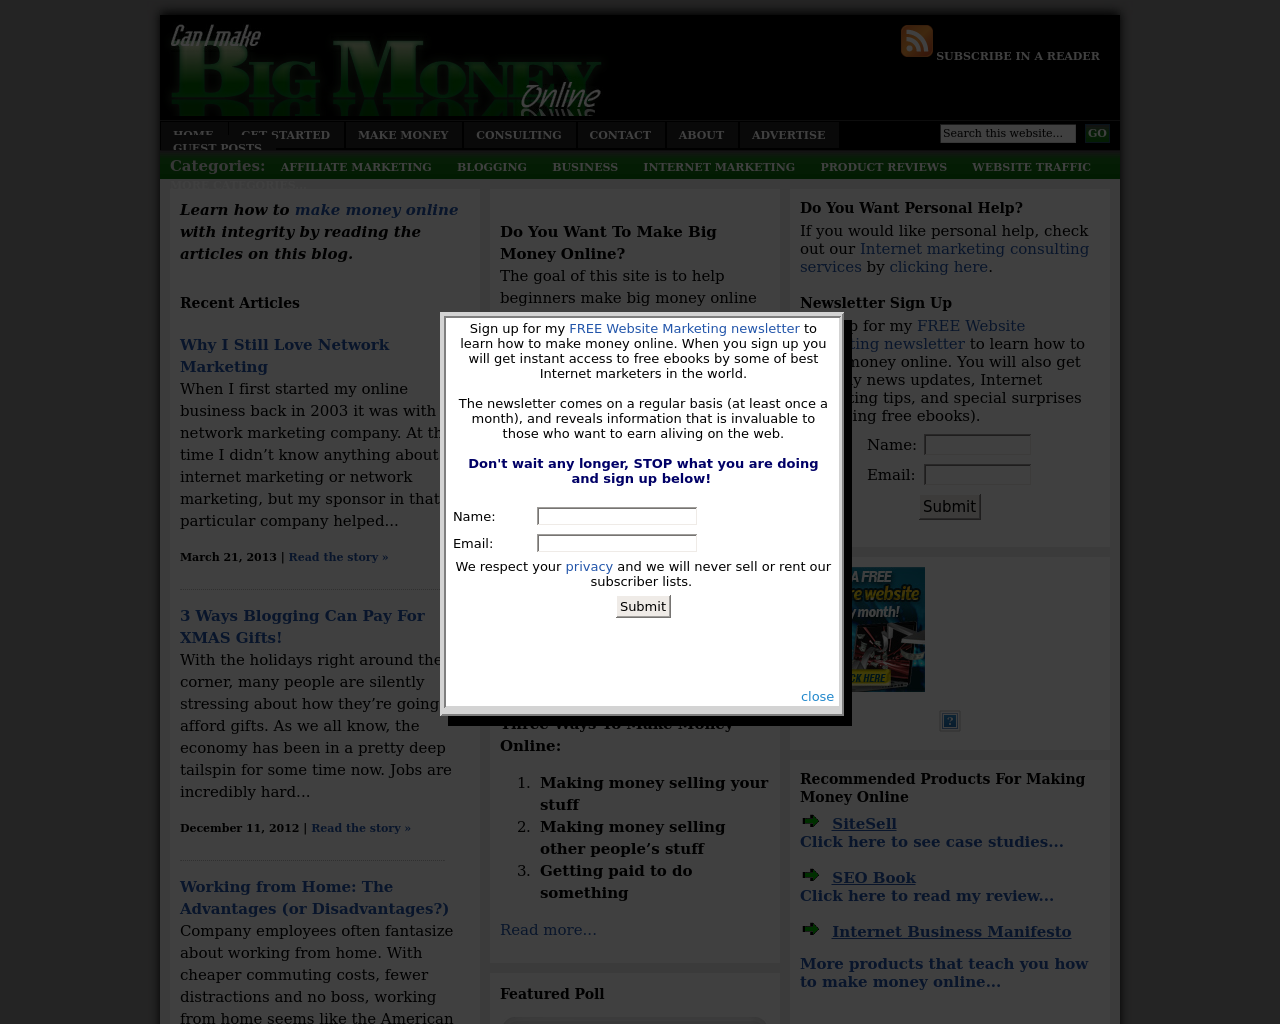 Can-I-Make-Big-Money-Online-Advertising-Reviews-Pricing